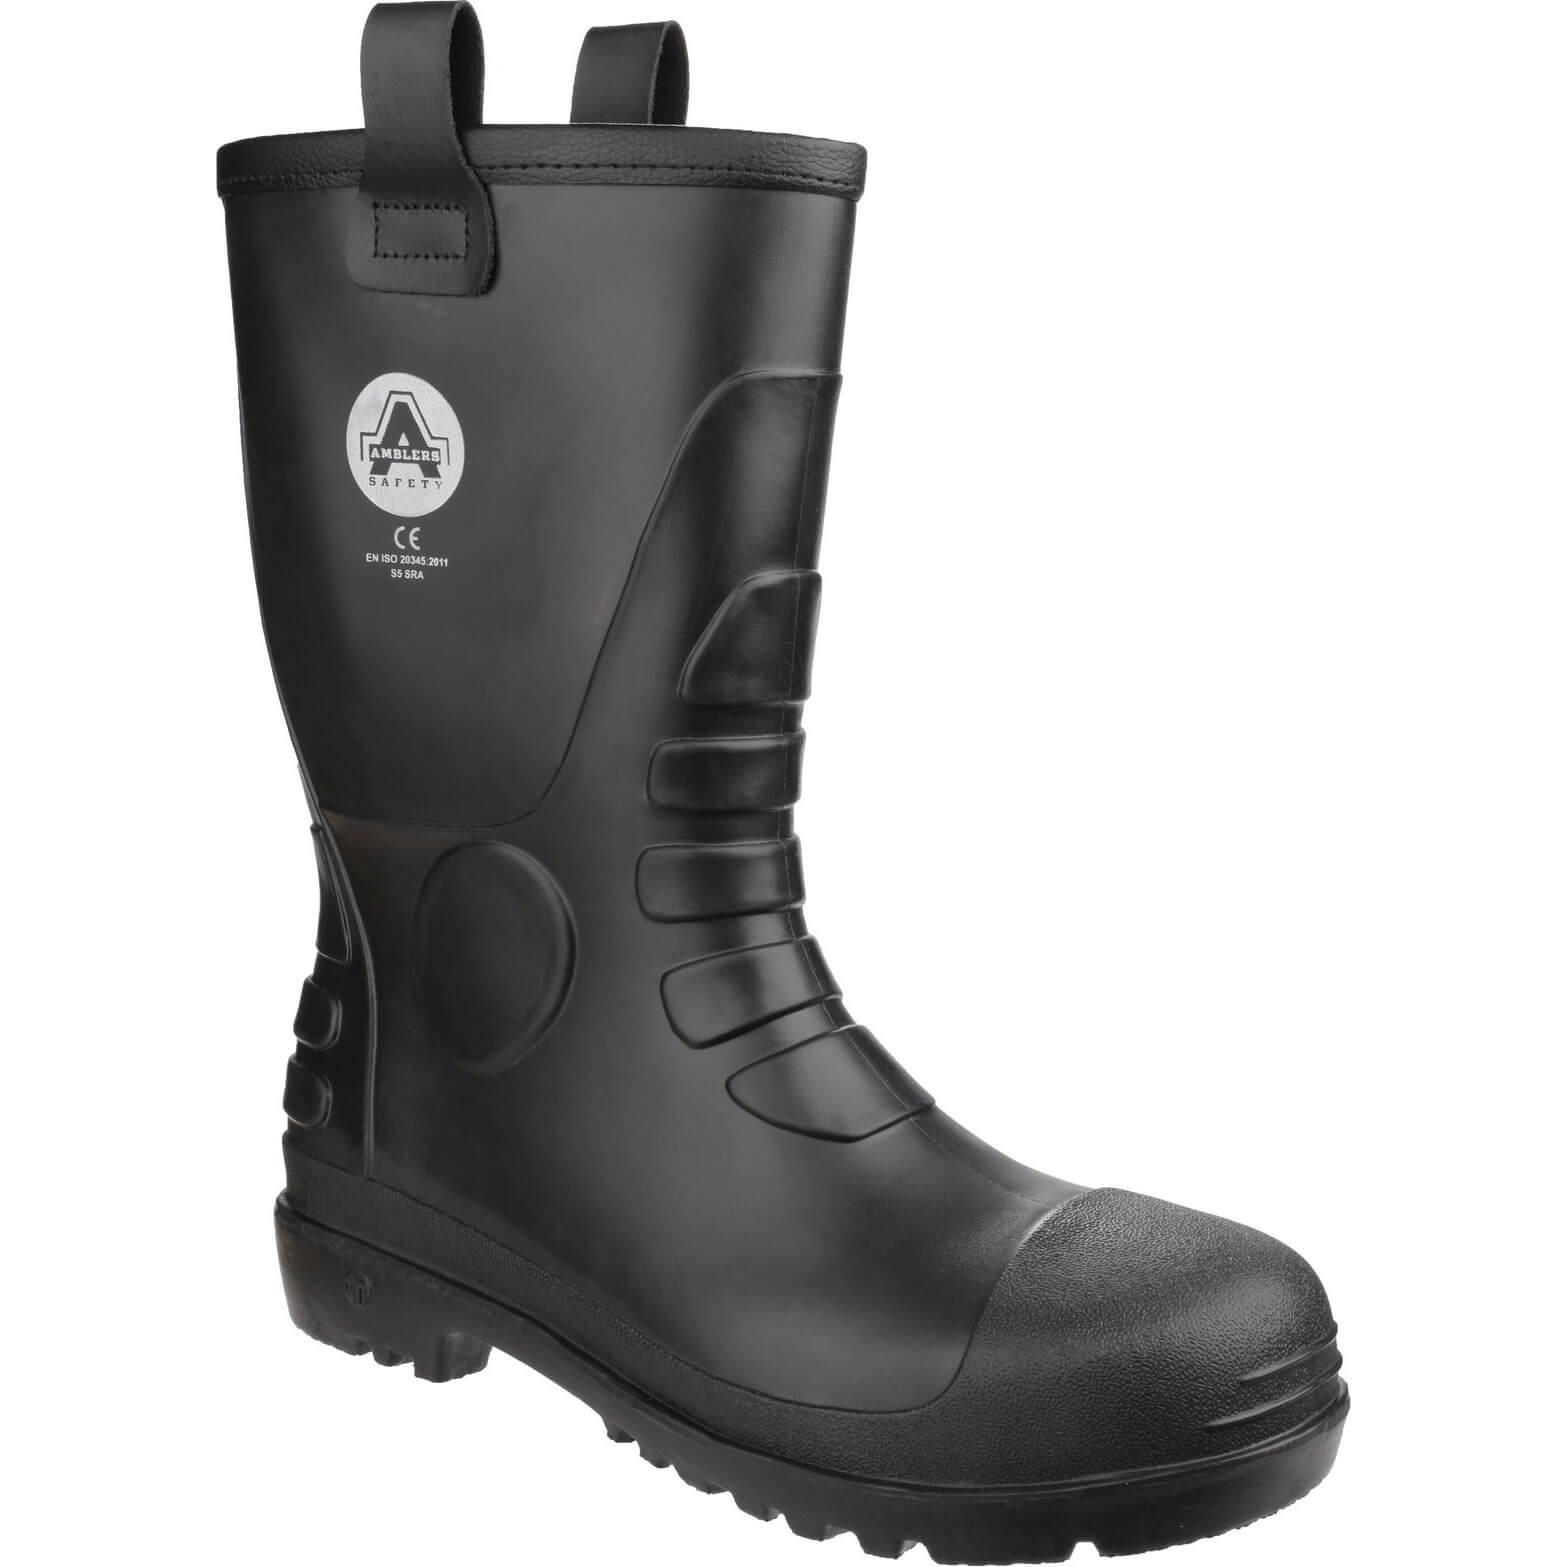 CHEAP Amblers Mens Safety FS90 Waterproof Pvc Pull On Safety Rigger Boots Black Size 4 – Men's Footwear